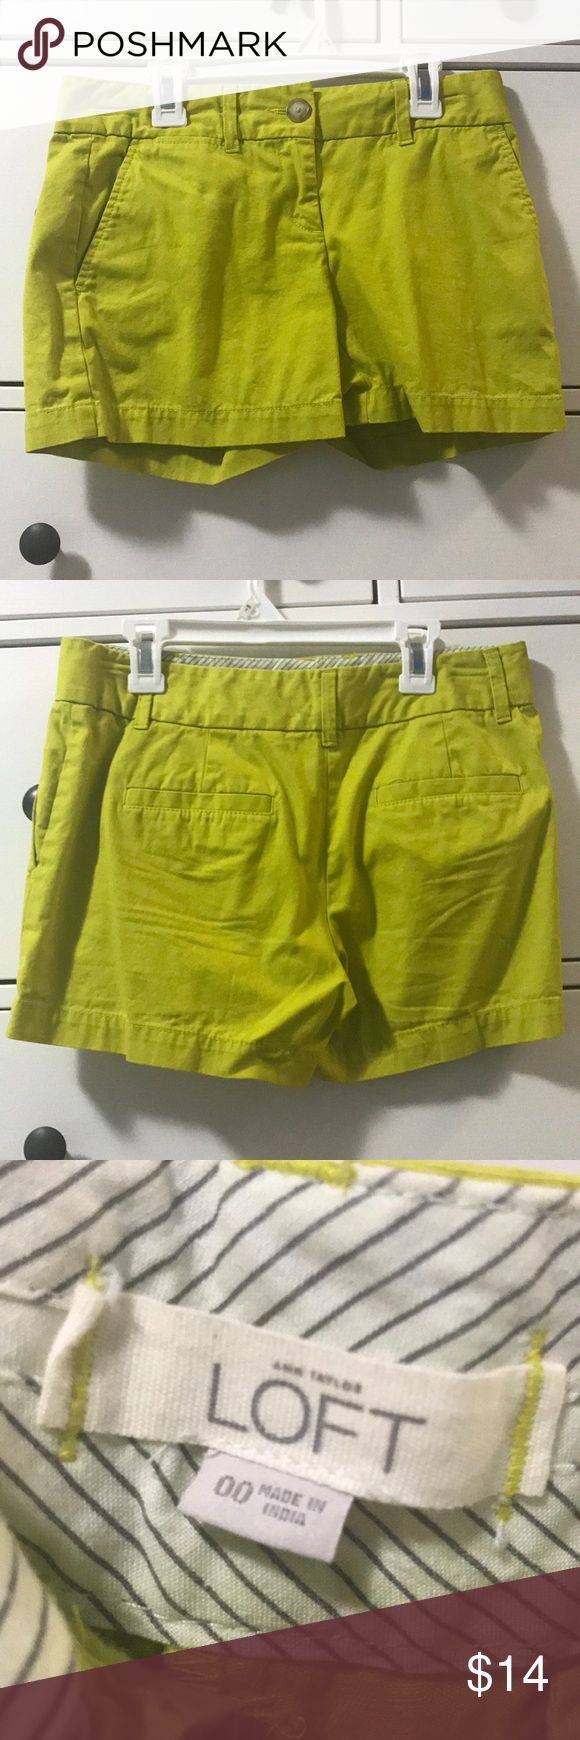 ANN TAYLOR LOFT LIME GREEN SHORTS Gender: Women's  Company: Ann Taylor LOFT  Description: Go outside and match the warmth of the approaching spring days in these super cute and stylish lime green shorts!  Size: 00  Condition: These were one of my favorite pairs of shorts when they used to fit me but they still look, smell, and feel like new! No pulls, no stains, no rips! Just like new! LOFT Shorts